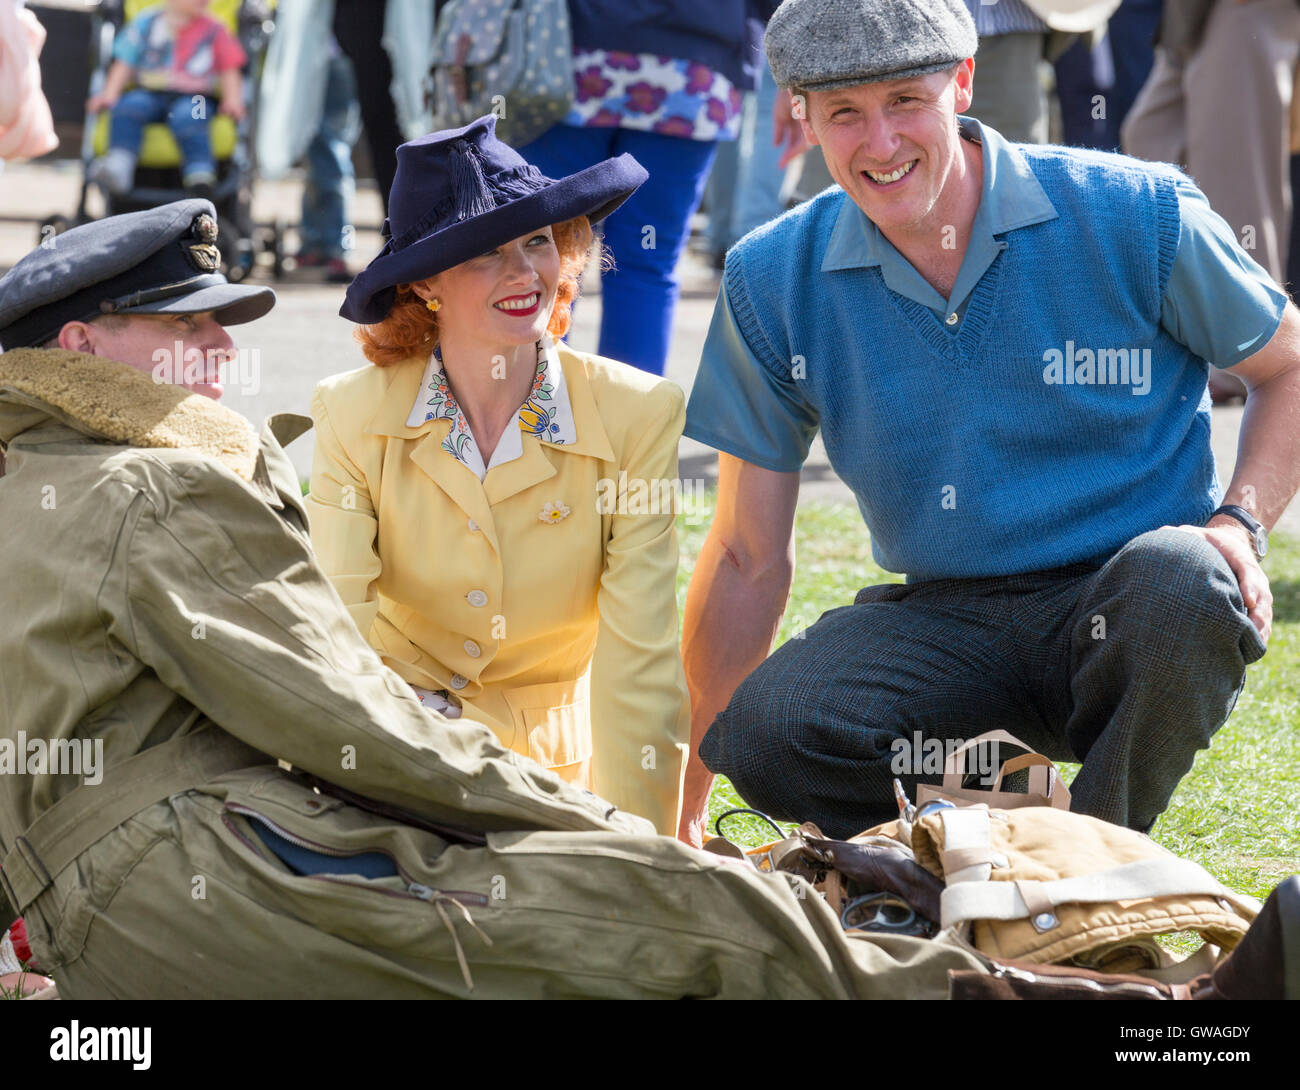 Village at War Weekend at Stoke Bruerne Canal Museum, Northamptonshire, England, UK - Stock Image